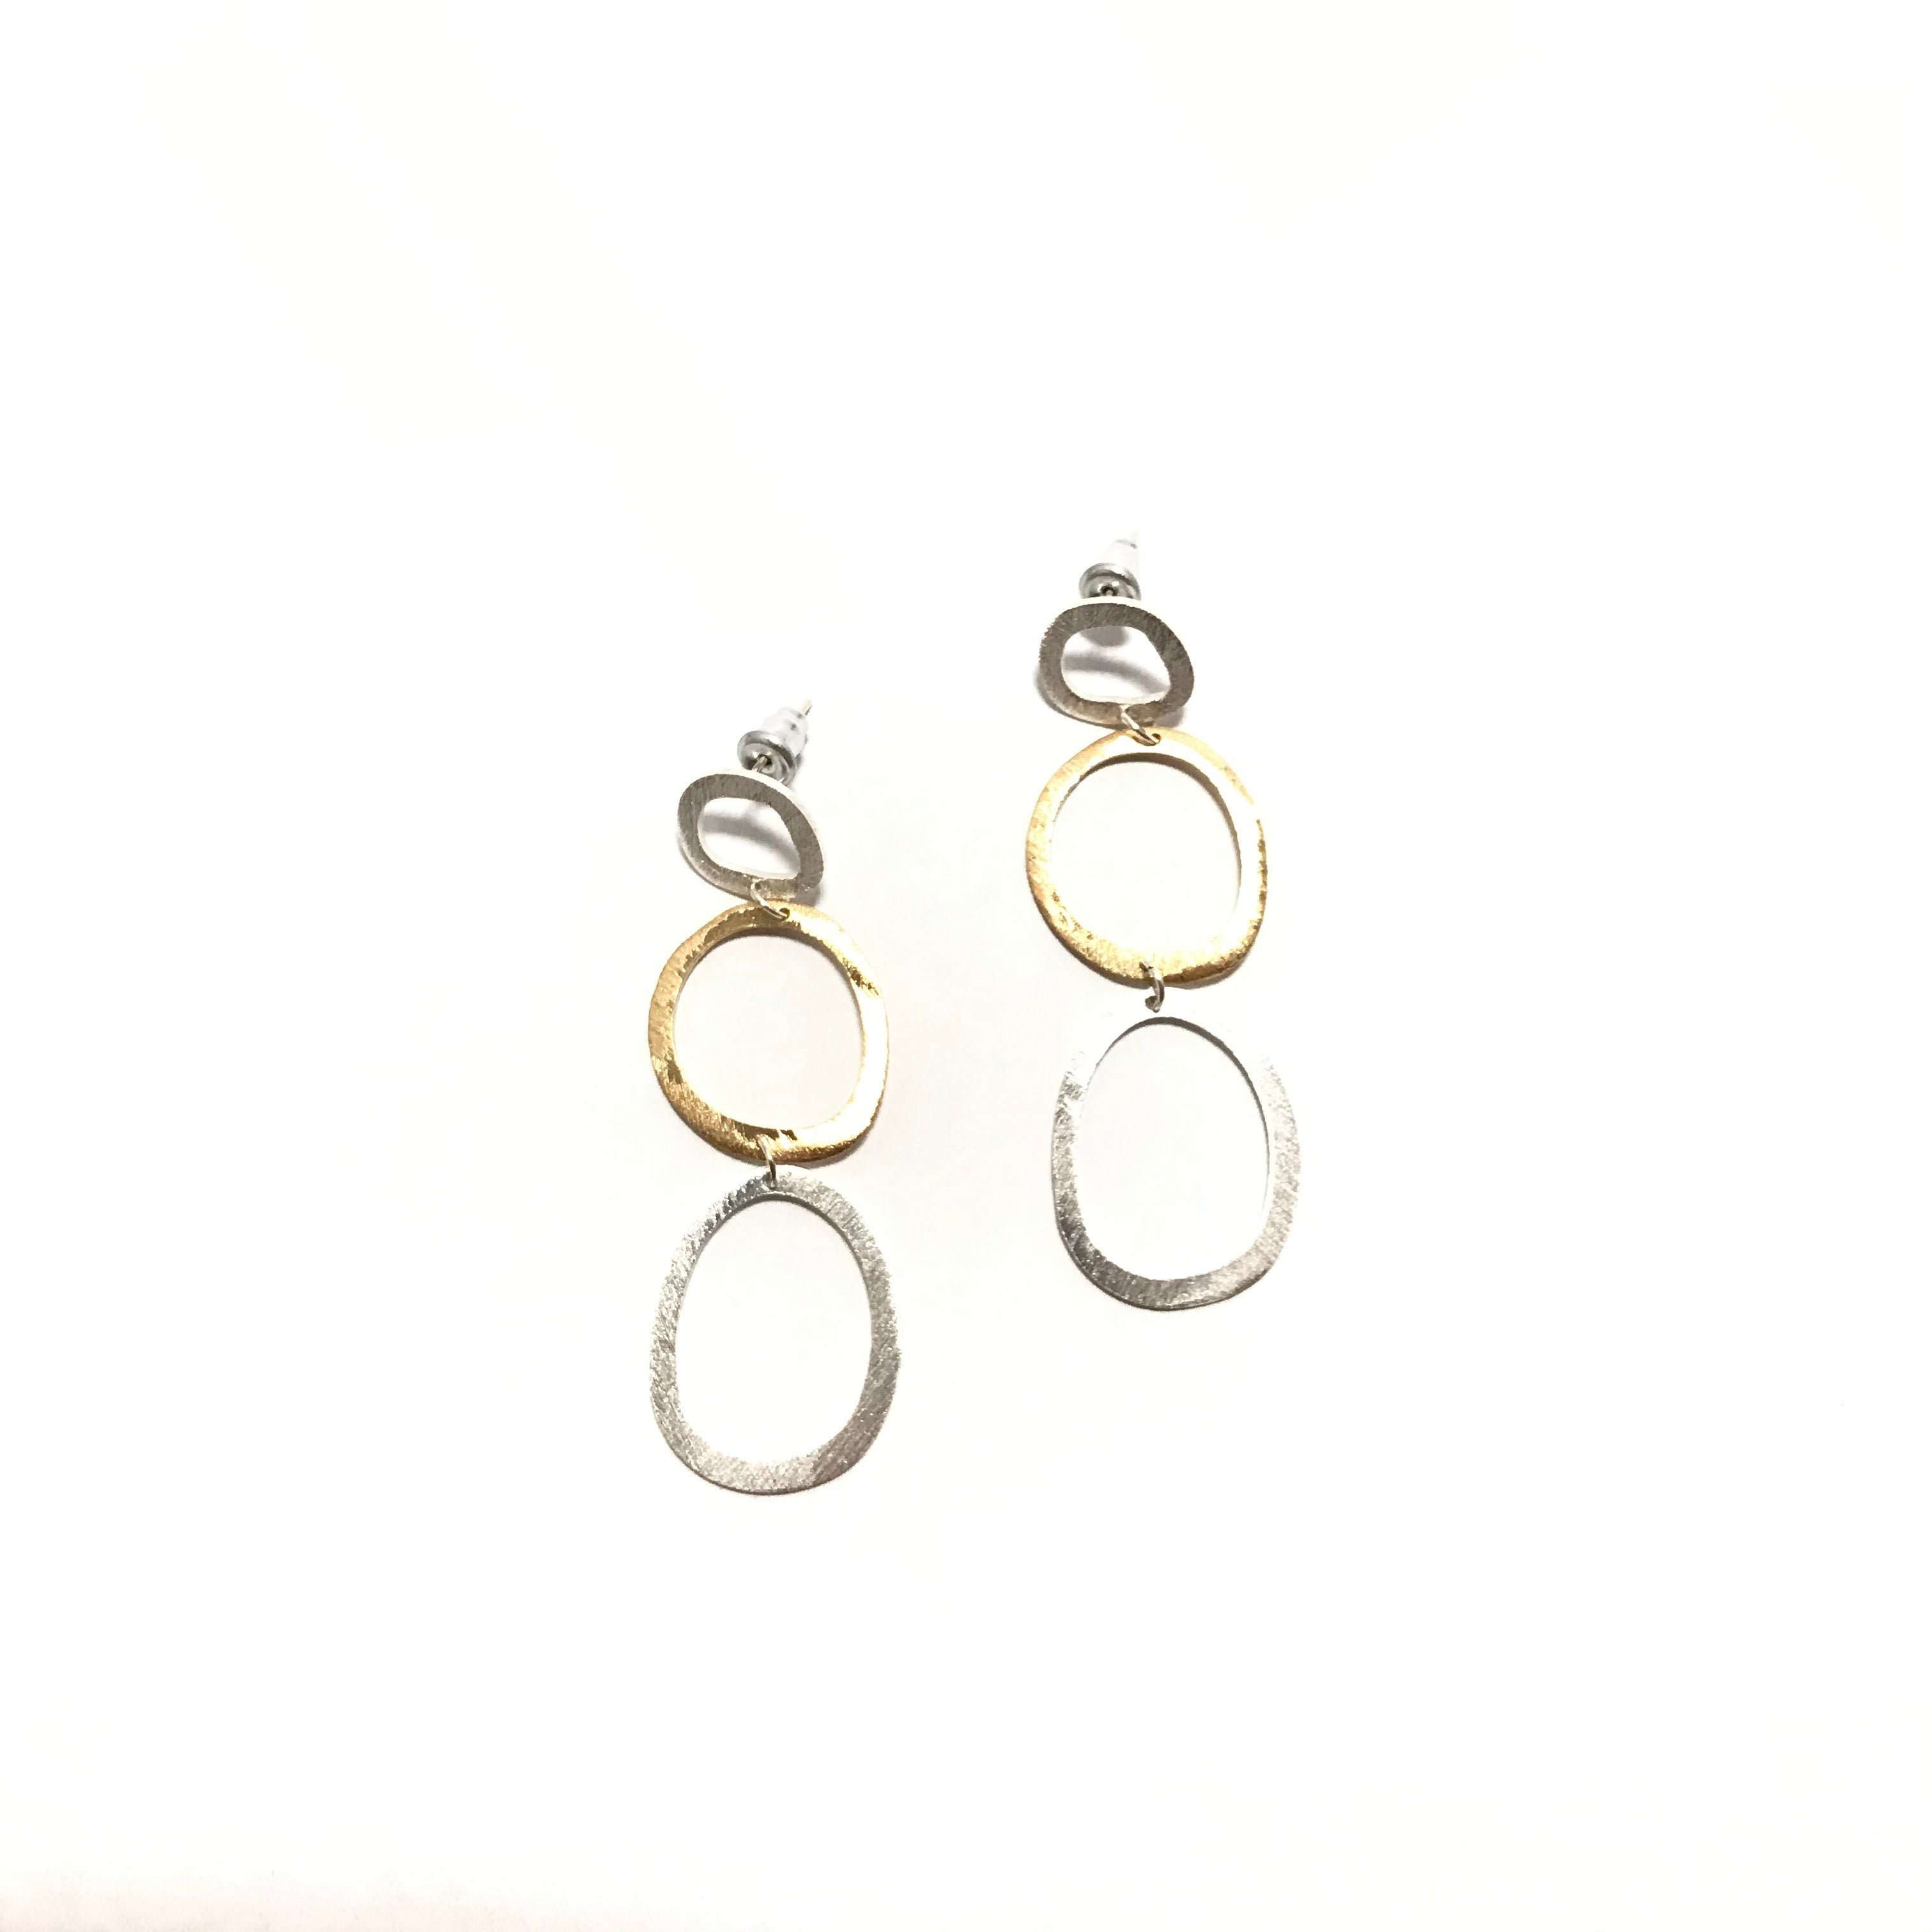 Takobia Tri-Circle Post Earrings